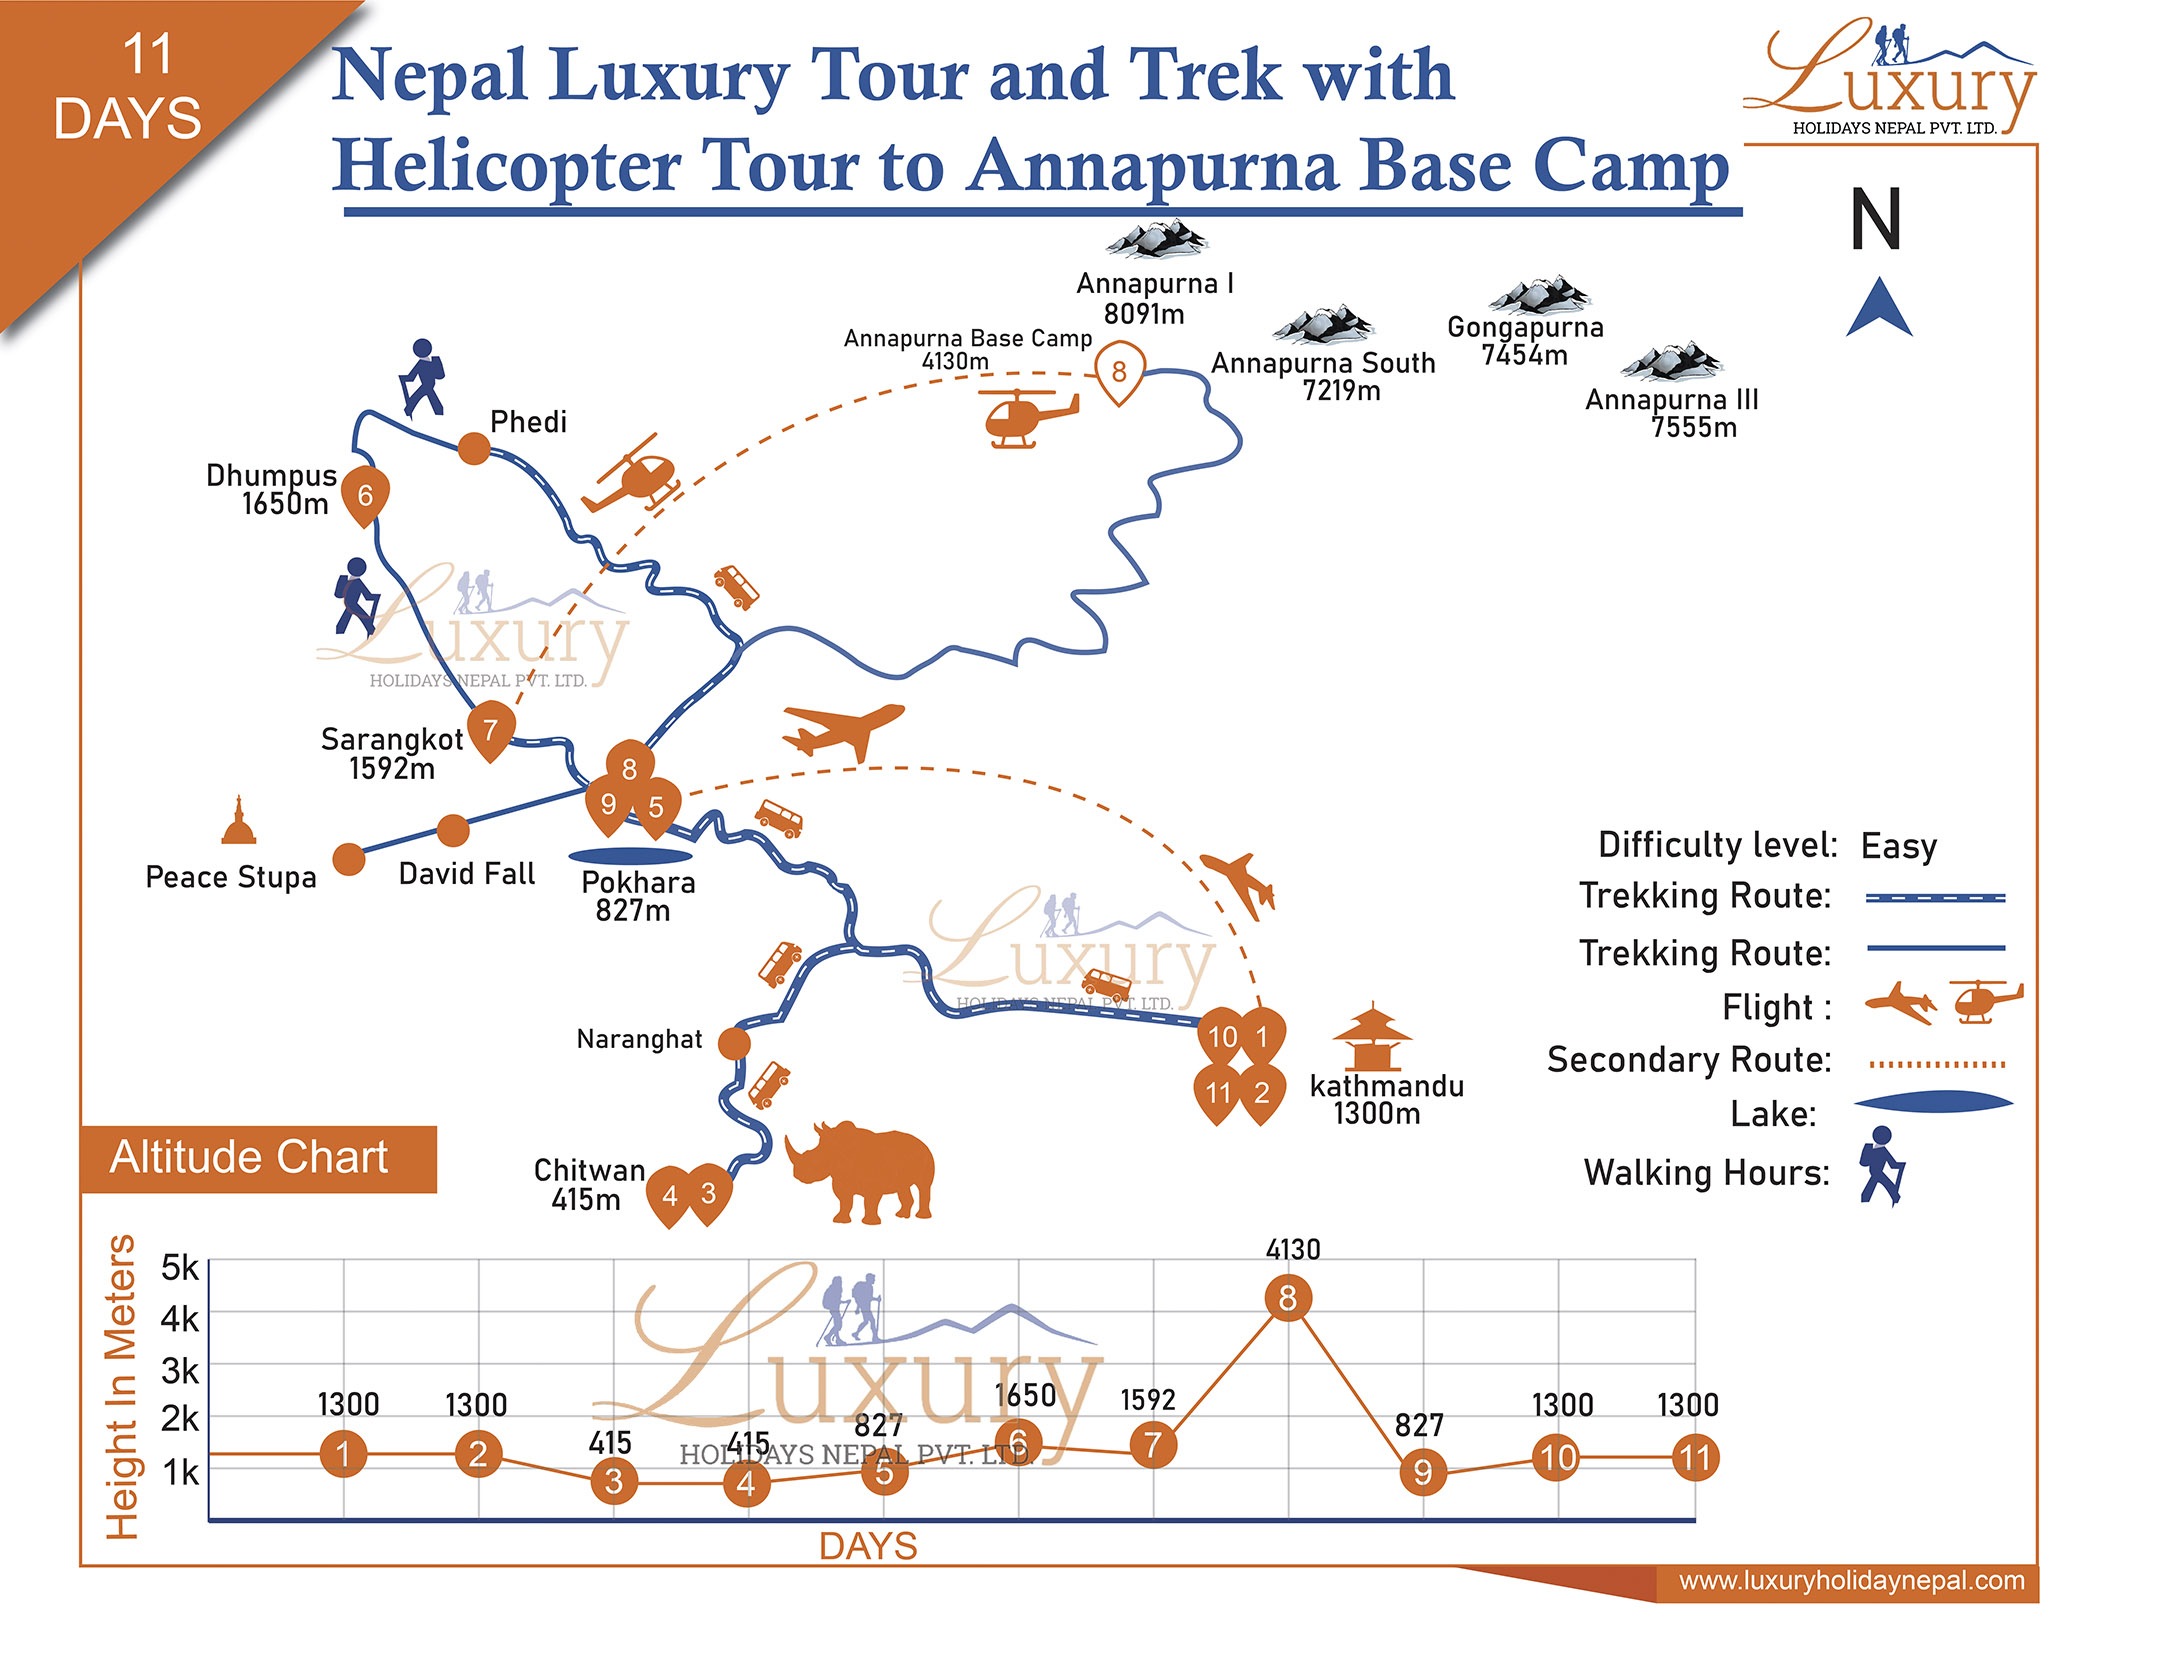 Nepal Luxury tour and Trek with Helicopter Tour to Annapurna Base Camp Trip Map